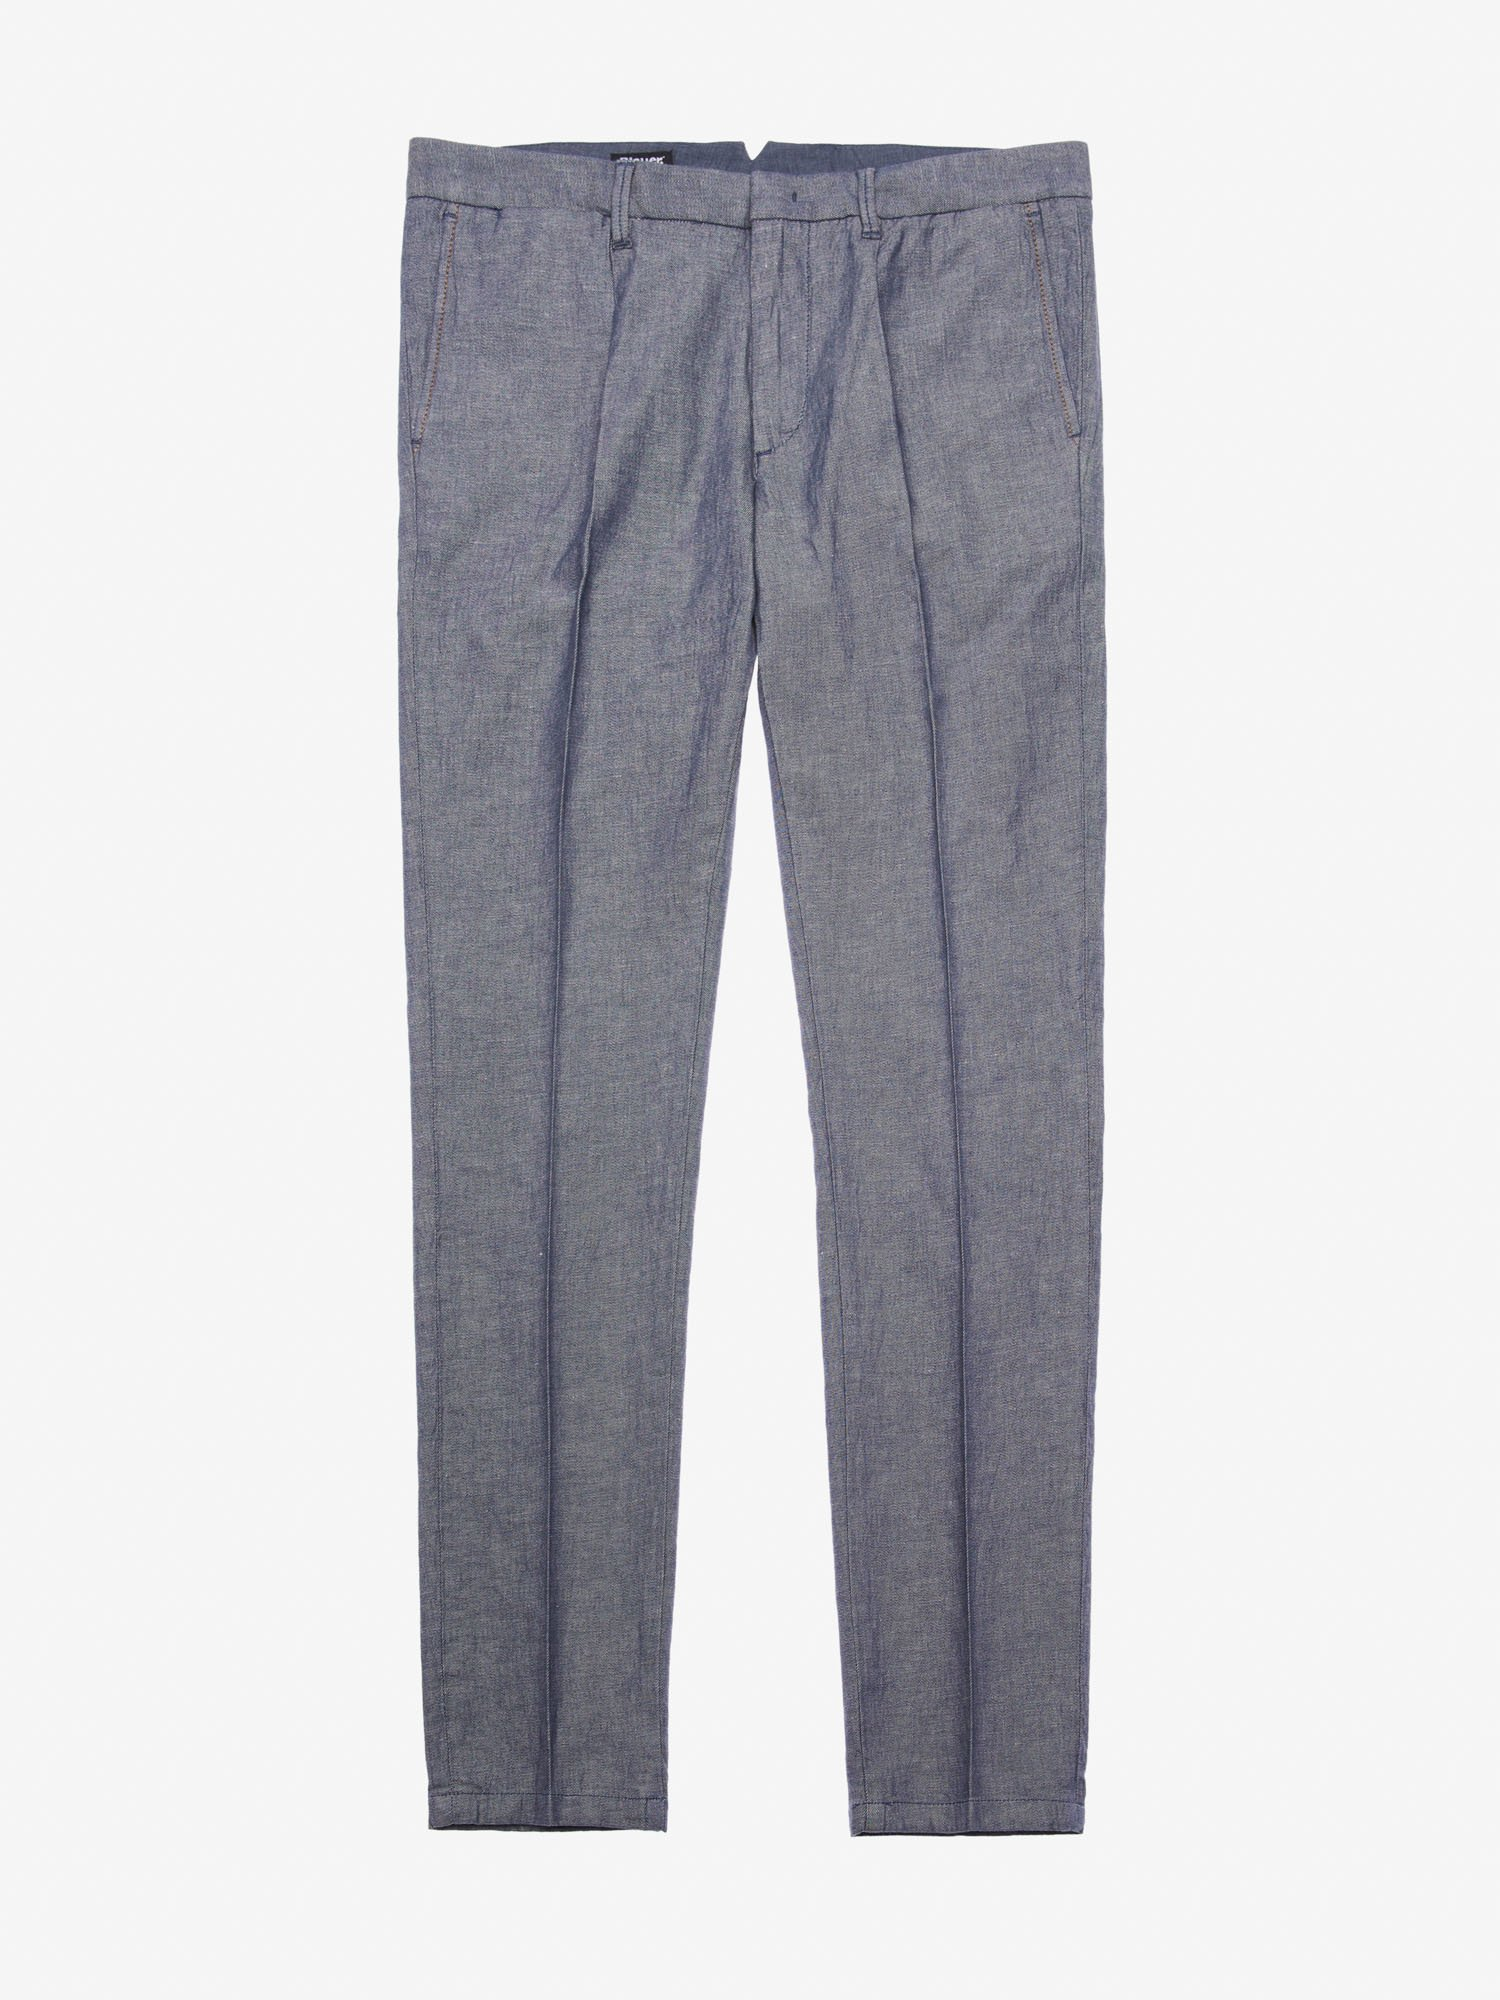 MEN'S STRETCH COTTON LINEN TROUSERS - Blauer